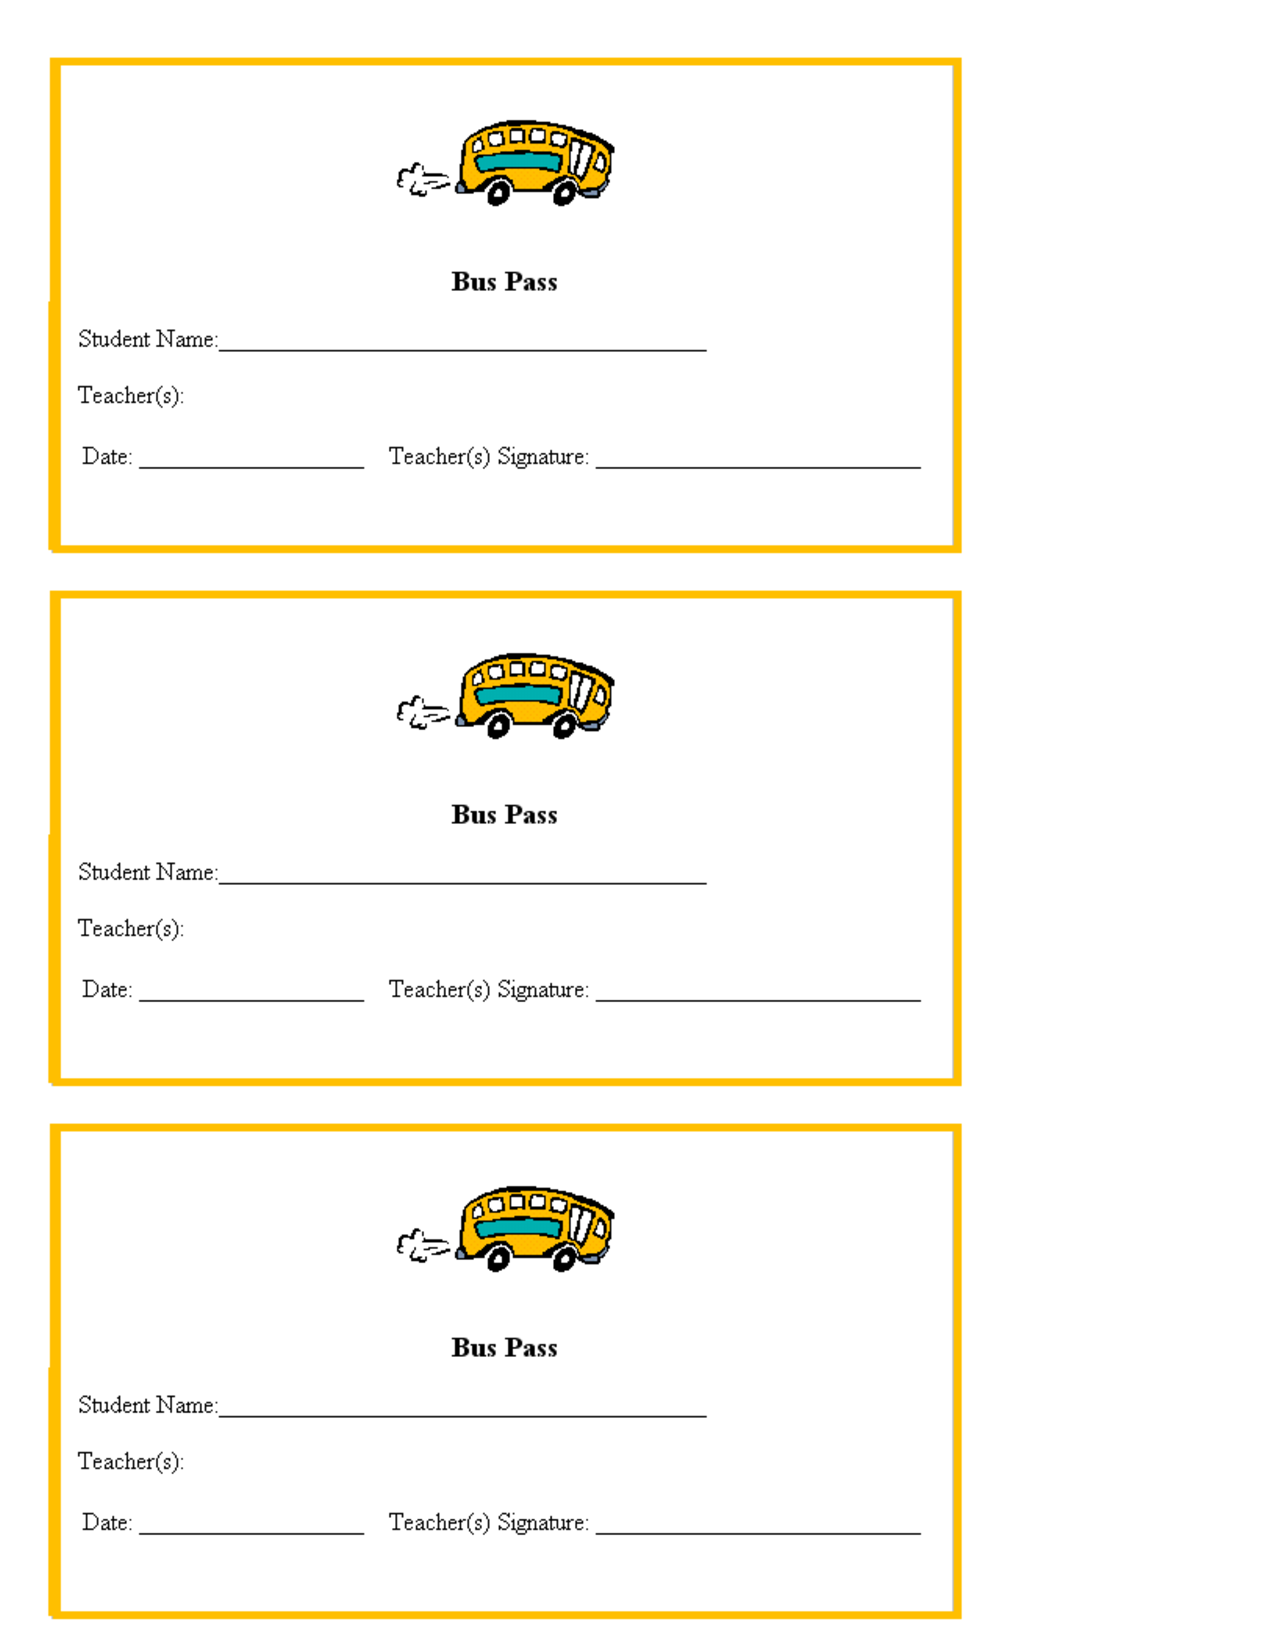 Hall pass template for teachers teacher printables school bus hall pass template for teachers teacher printables school bus passes template form maxwellsz